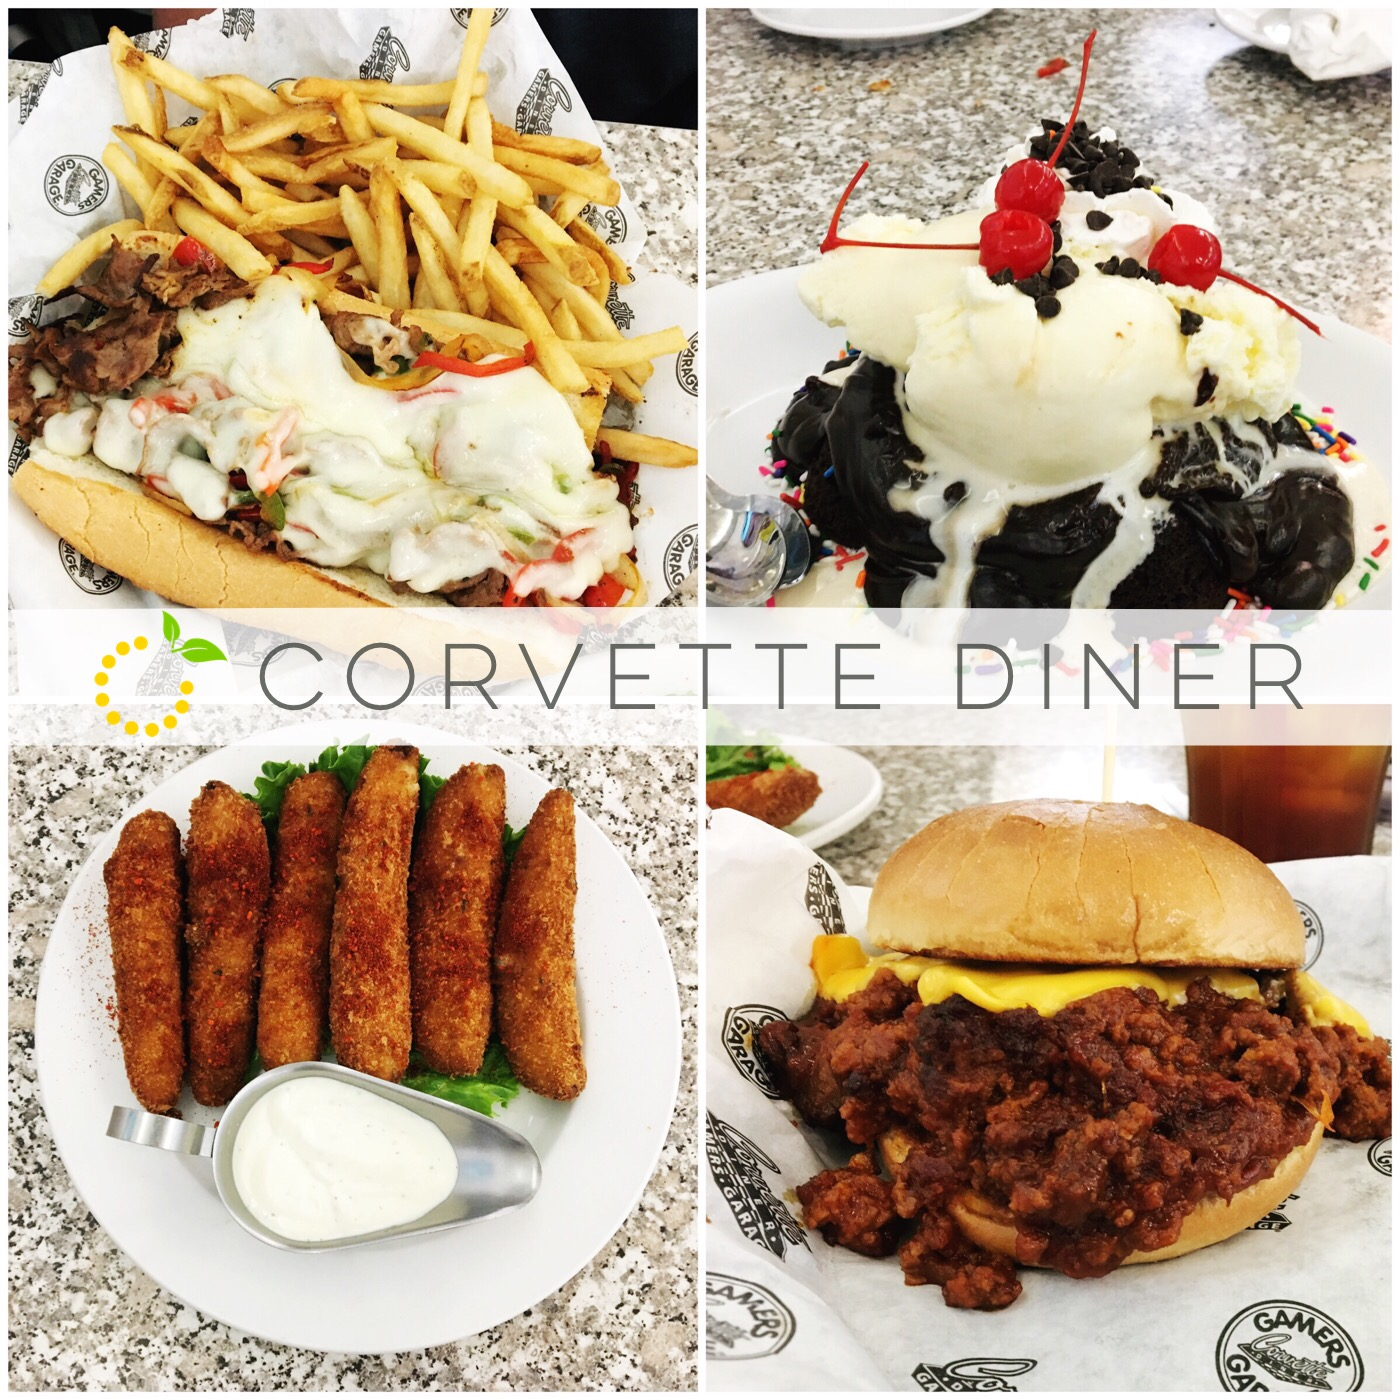 Corvette Diner Food sweetlemonmade.com